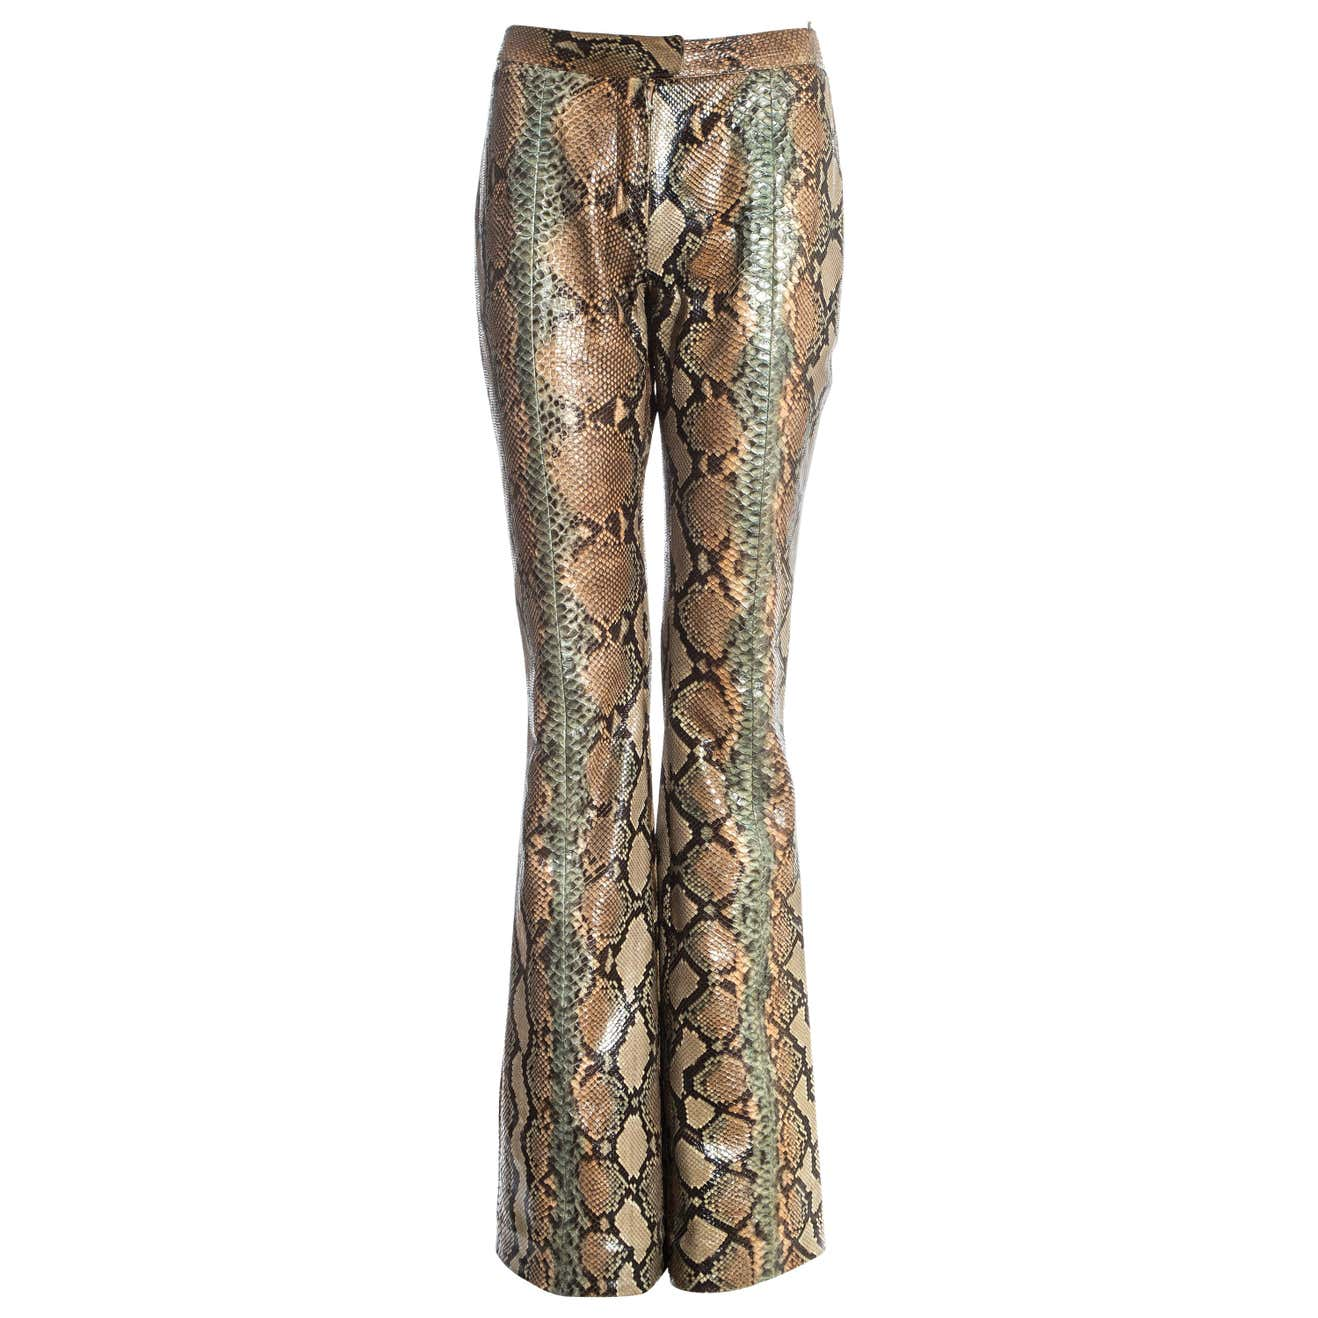 Gucci by Tom Ford tan python leather flared pants, ss 2000 by Gucci, available on 1stdibs.com for $9496.19 Kim Kardashian Pants Exact Product